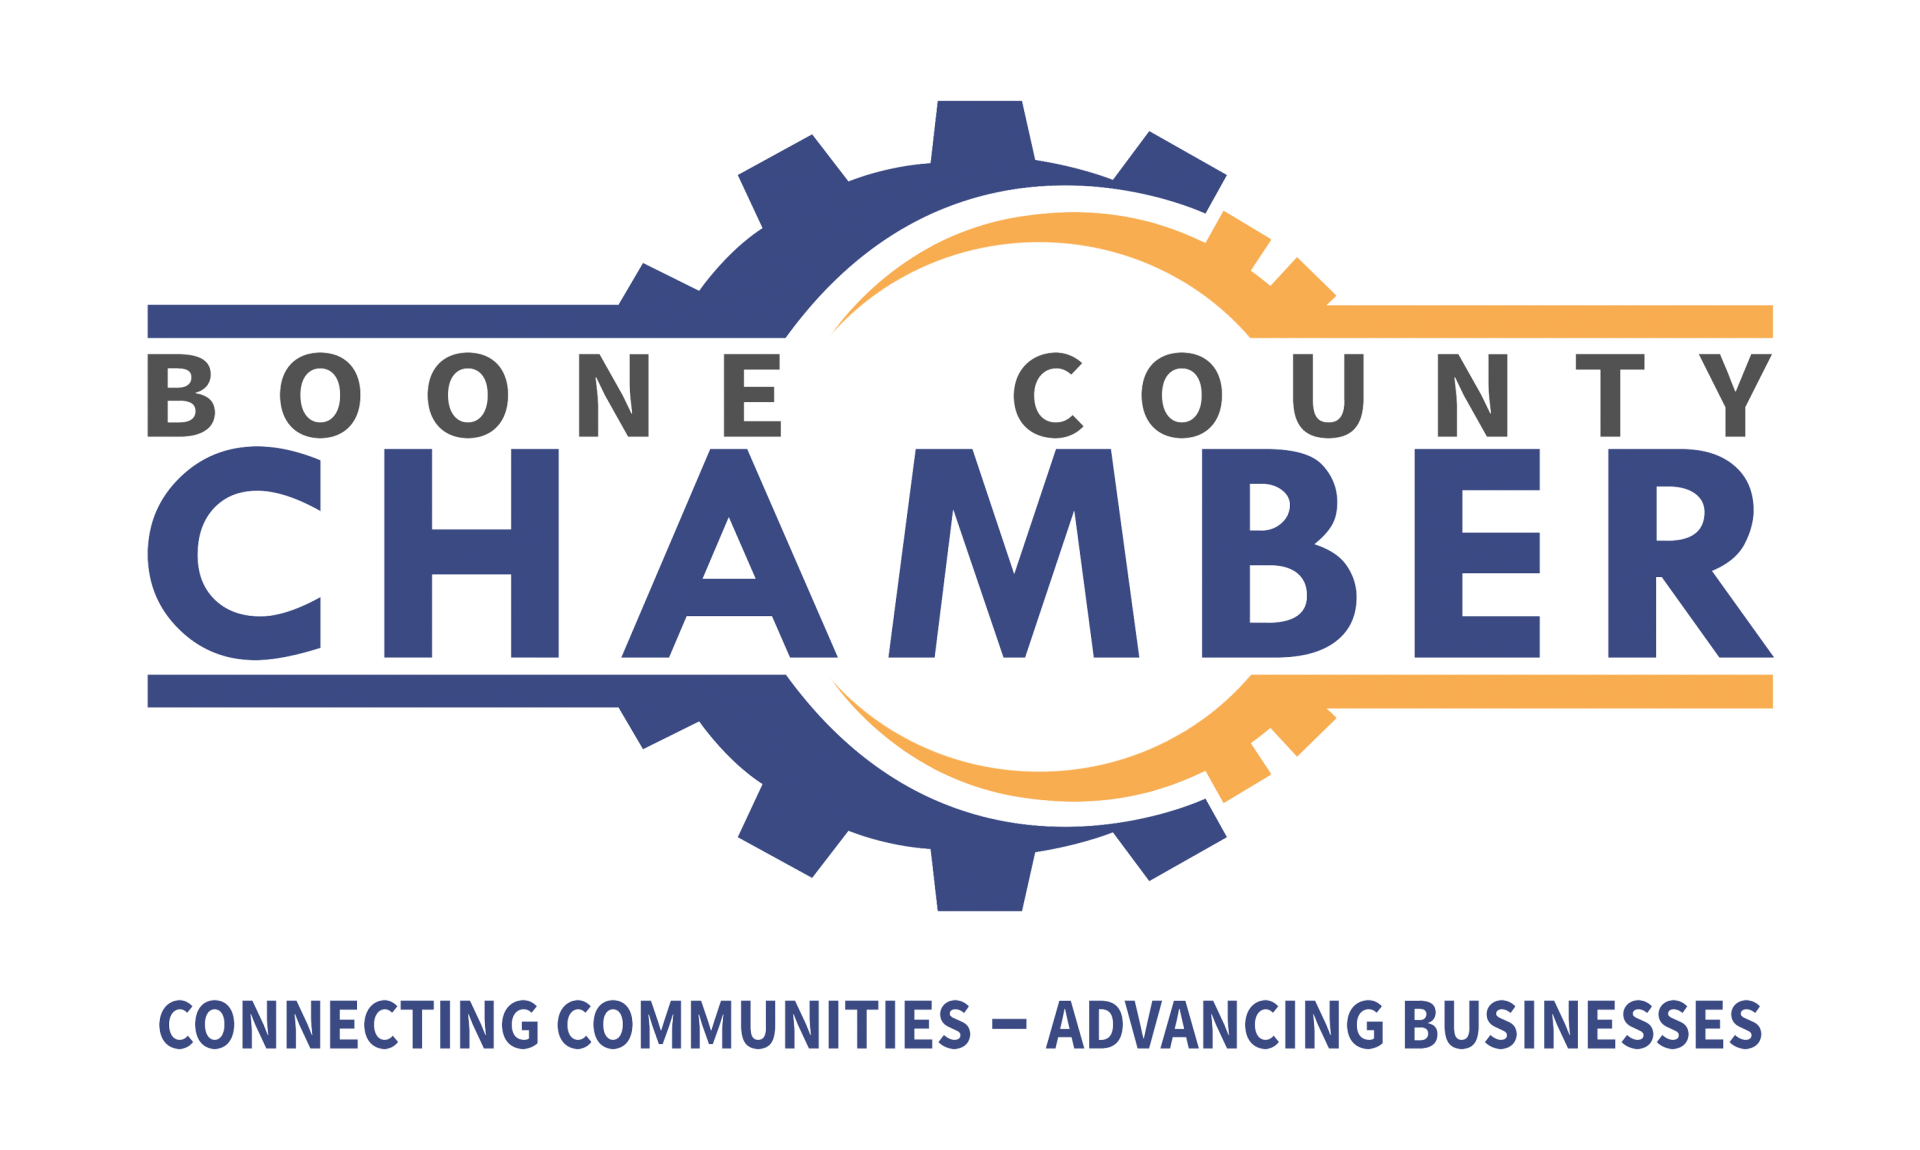 Boone County Chamber of Commerce Logo